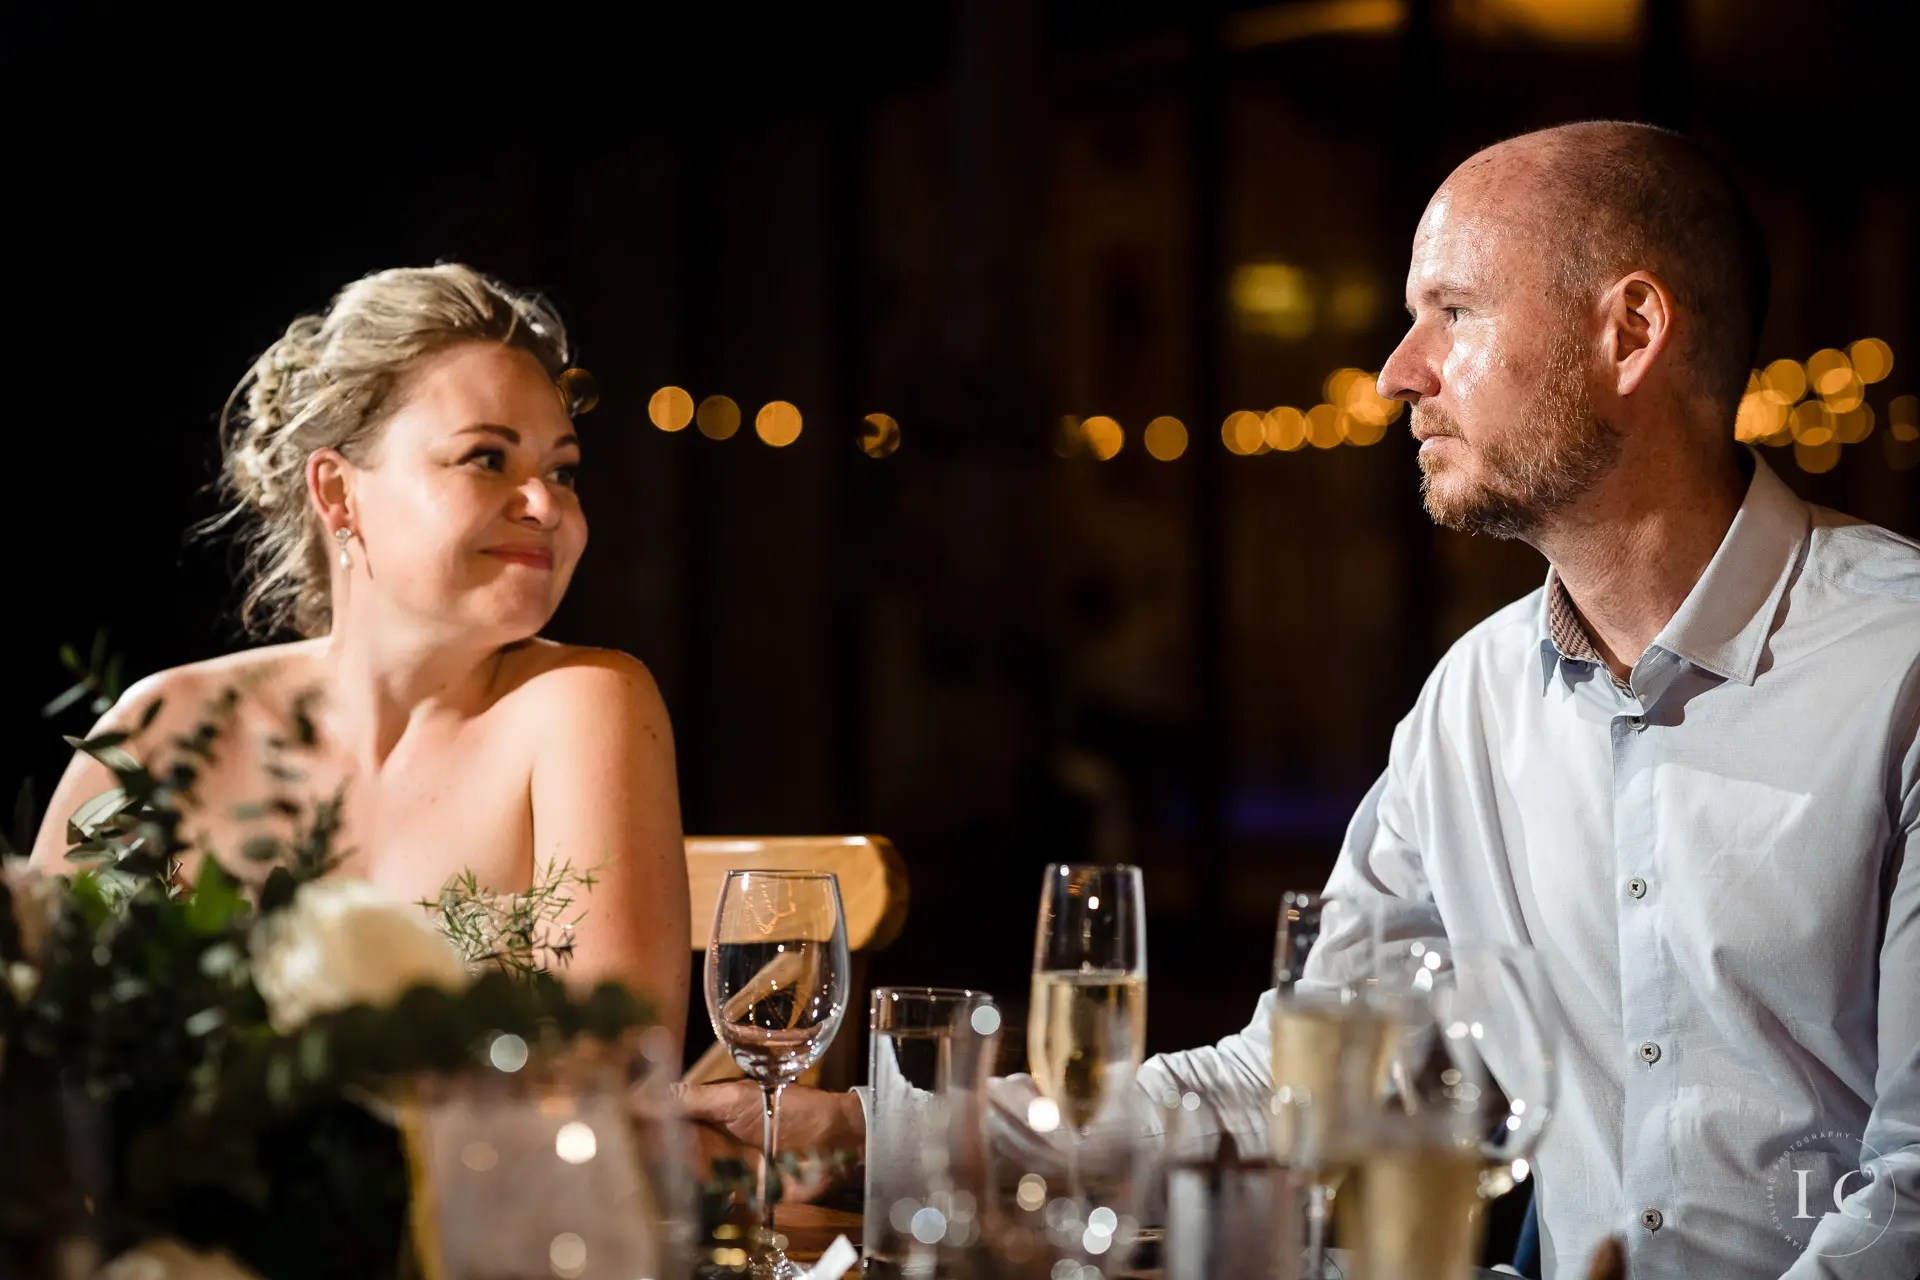 Seated guests at a wedding